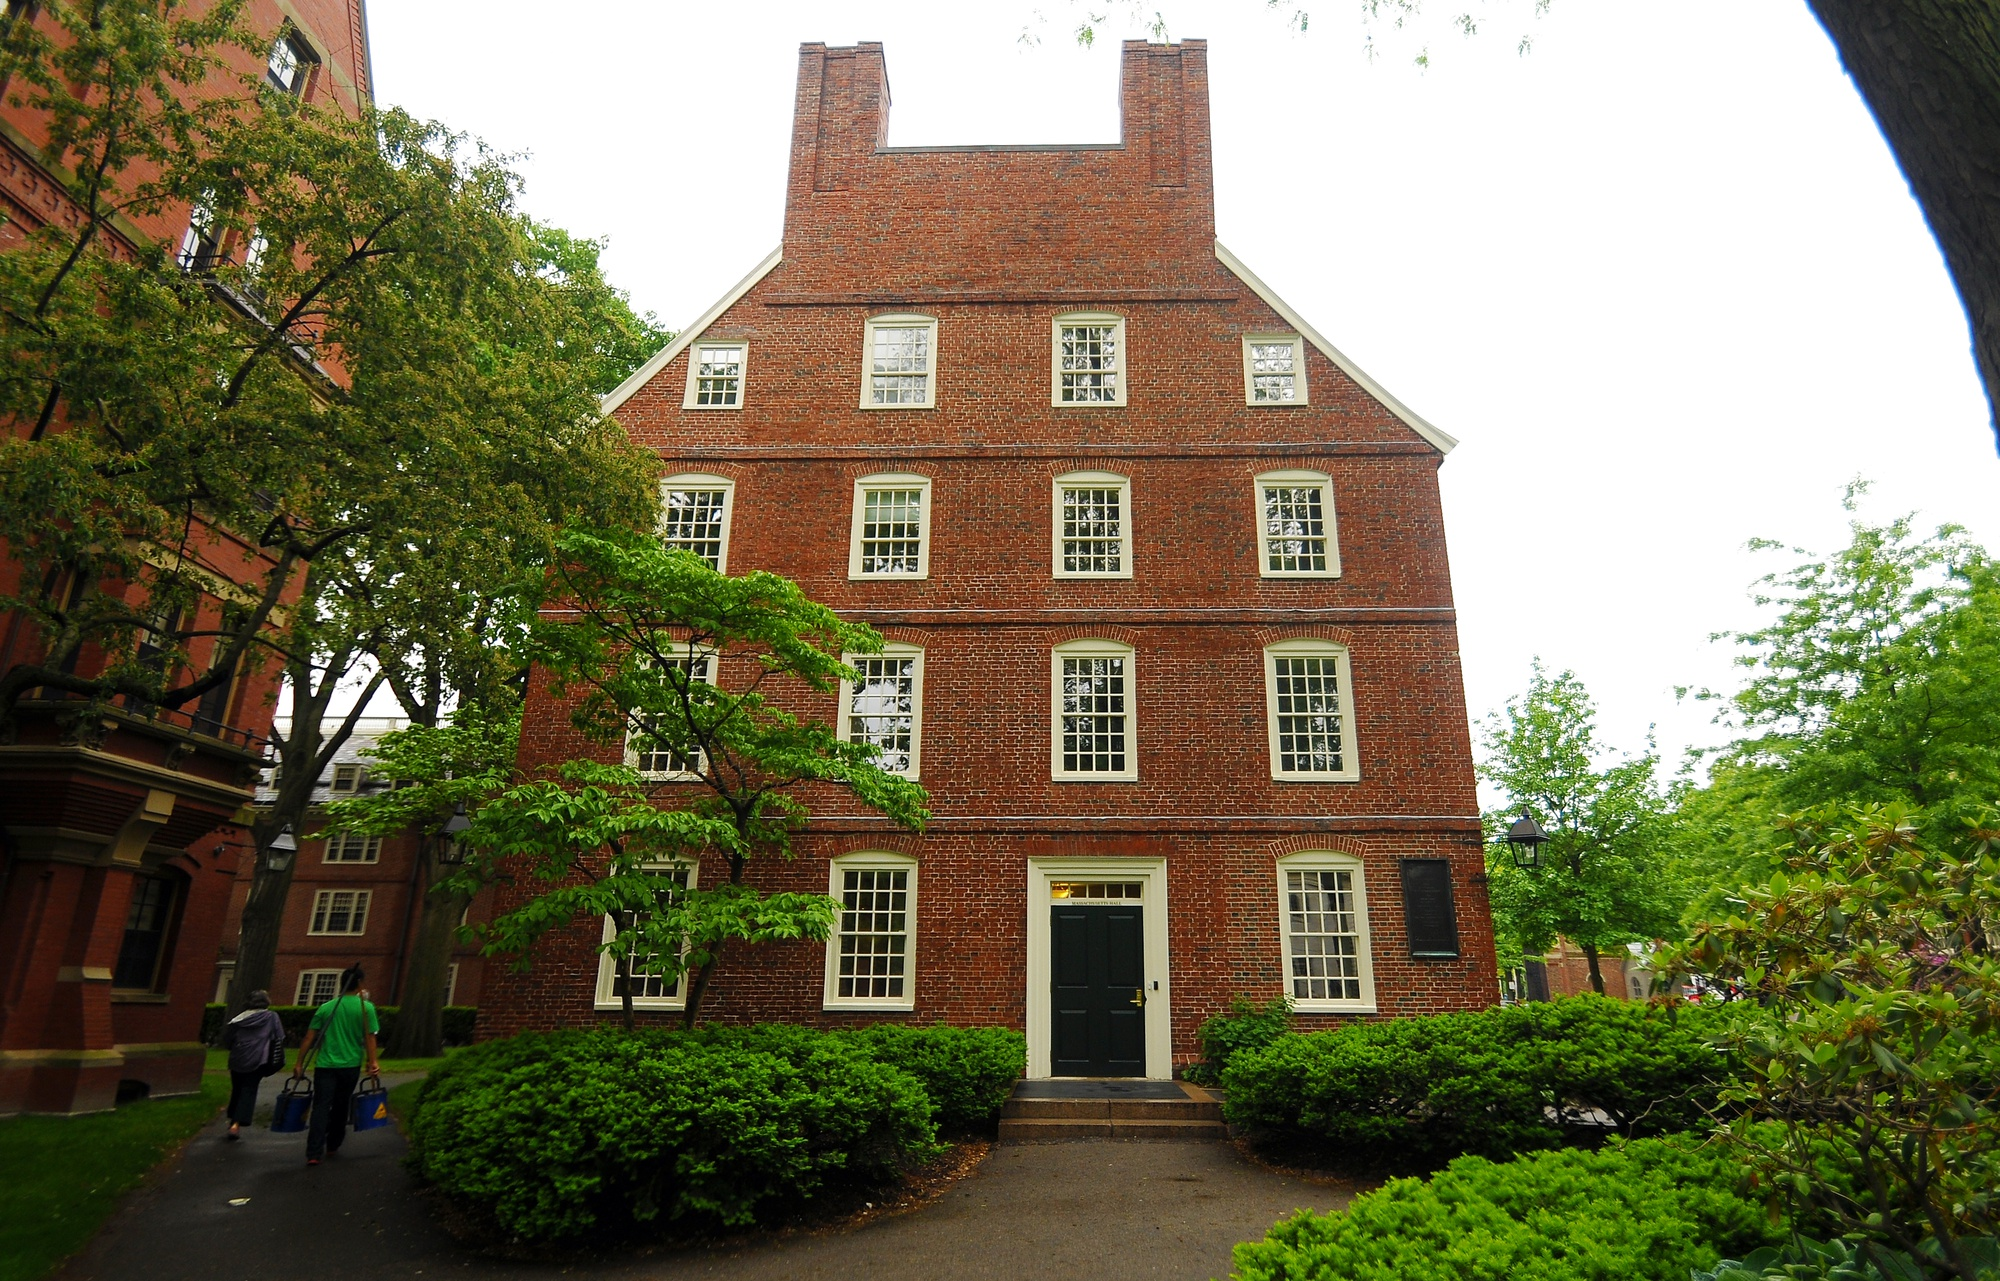 Massachusetts Hall, the home of Harvard's central administration, is pictured.